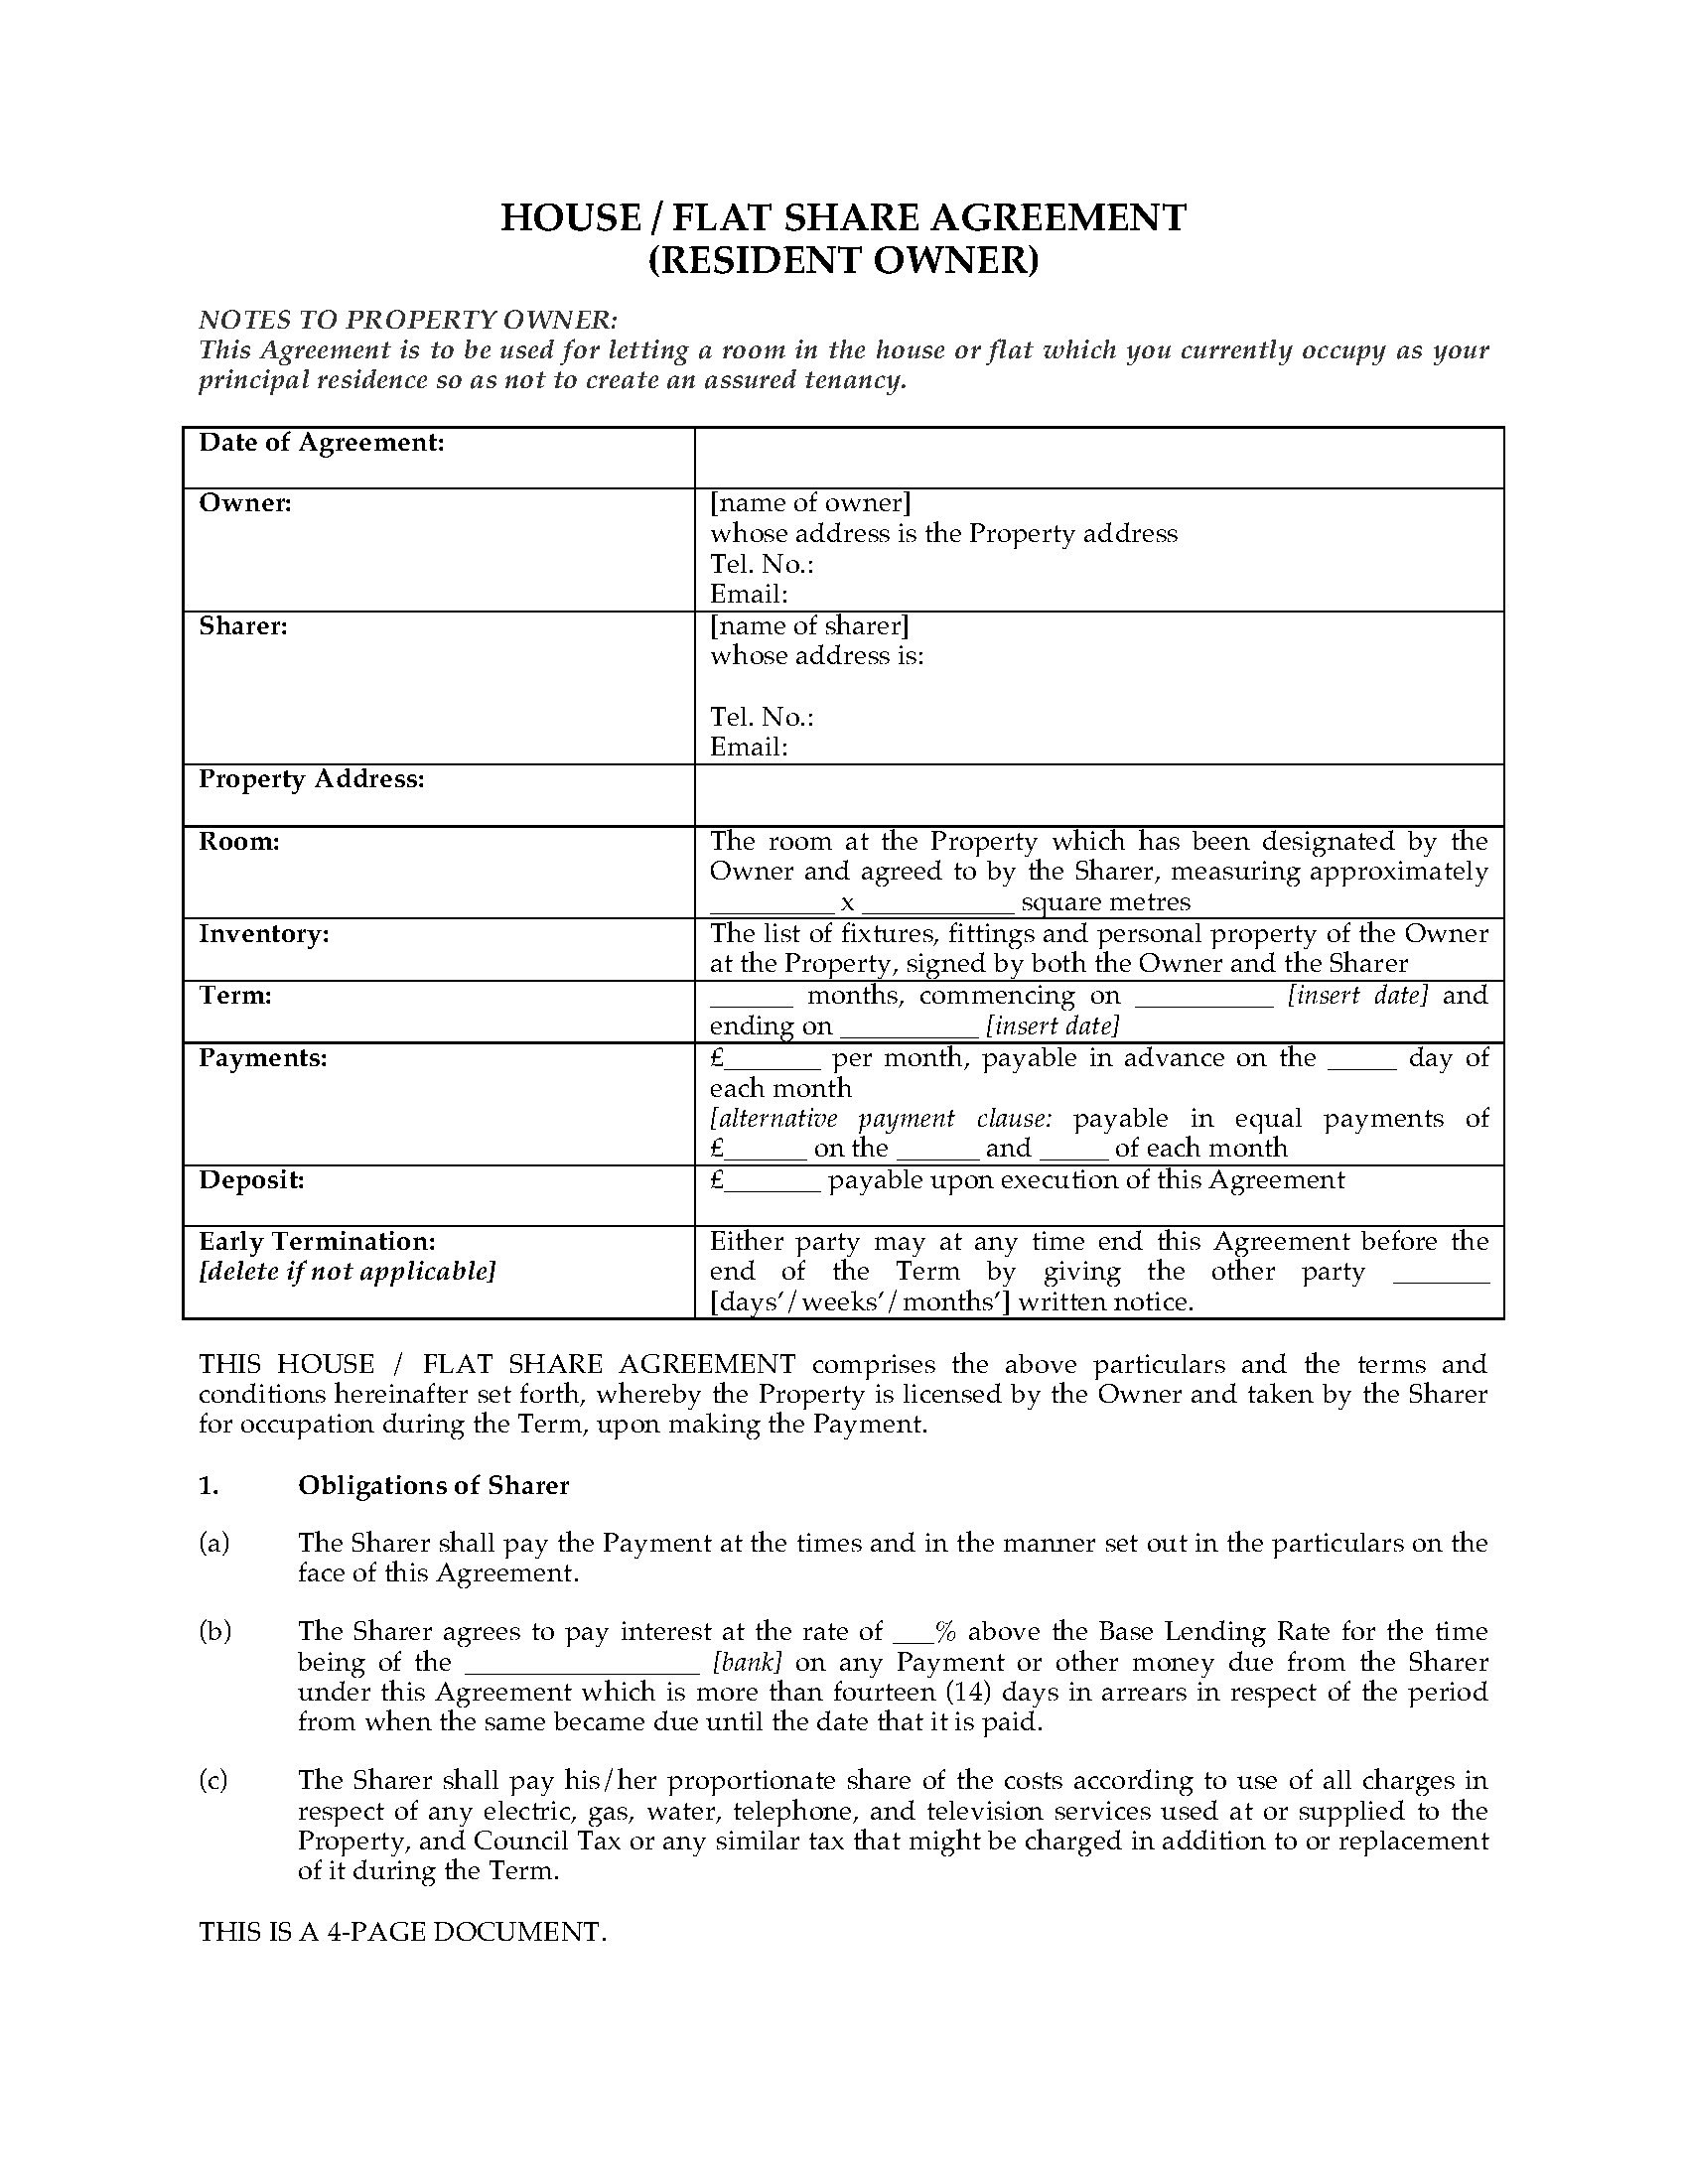 Uk House  Flat Share Agreement With Resident Owner  Legal Forms Throughout Termination Of Lodger Agreement Template